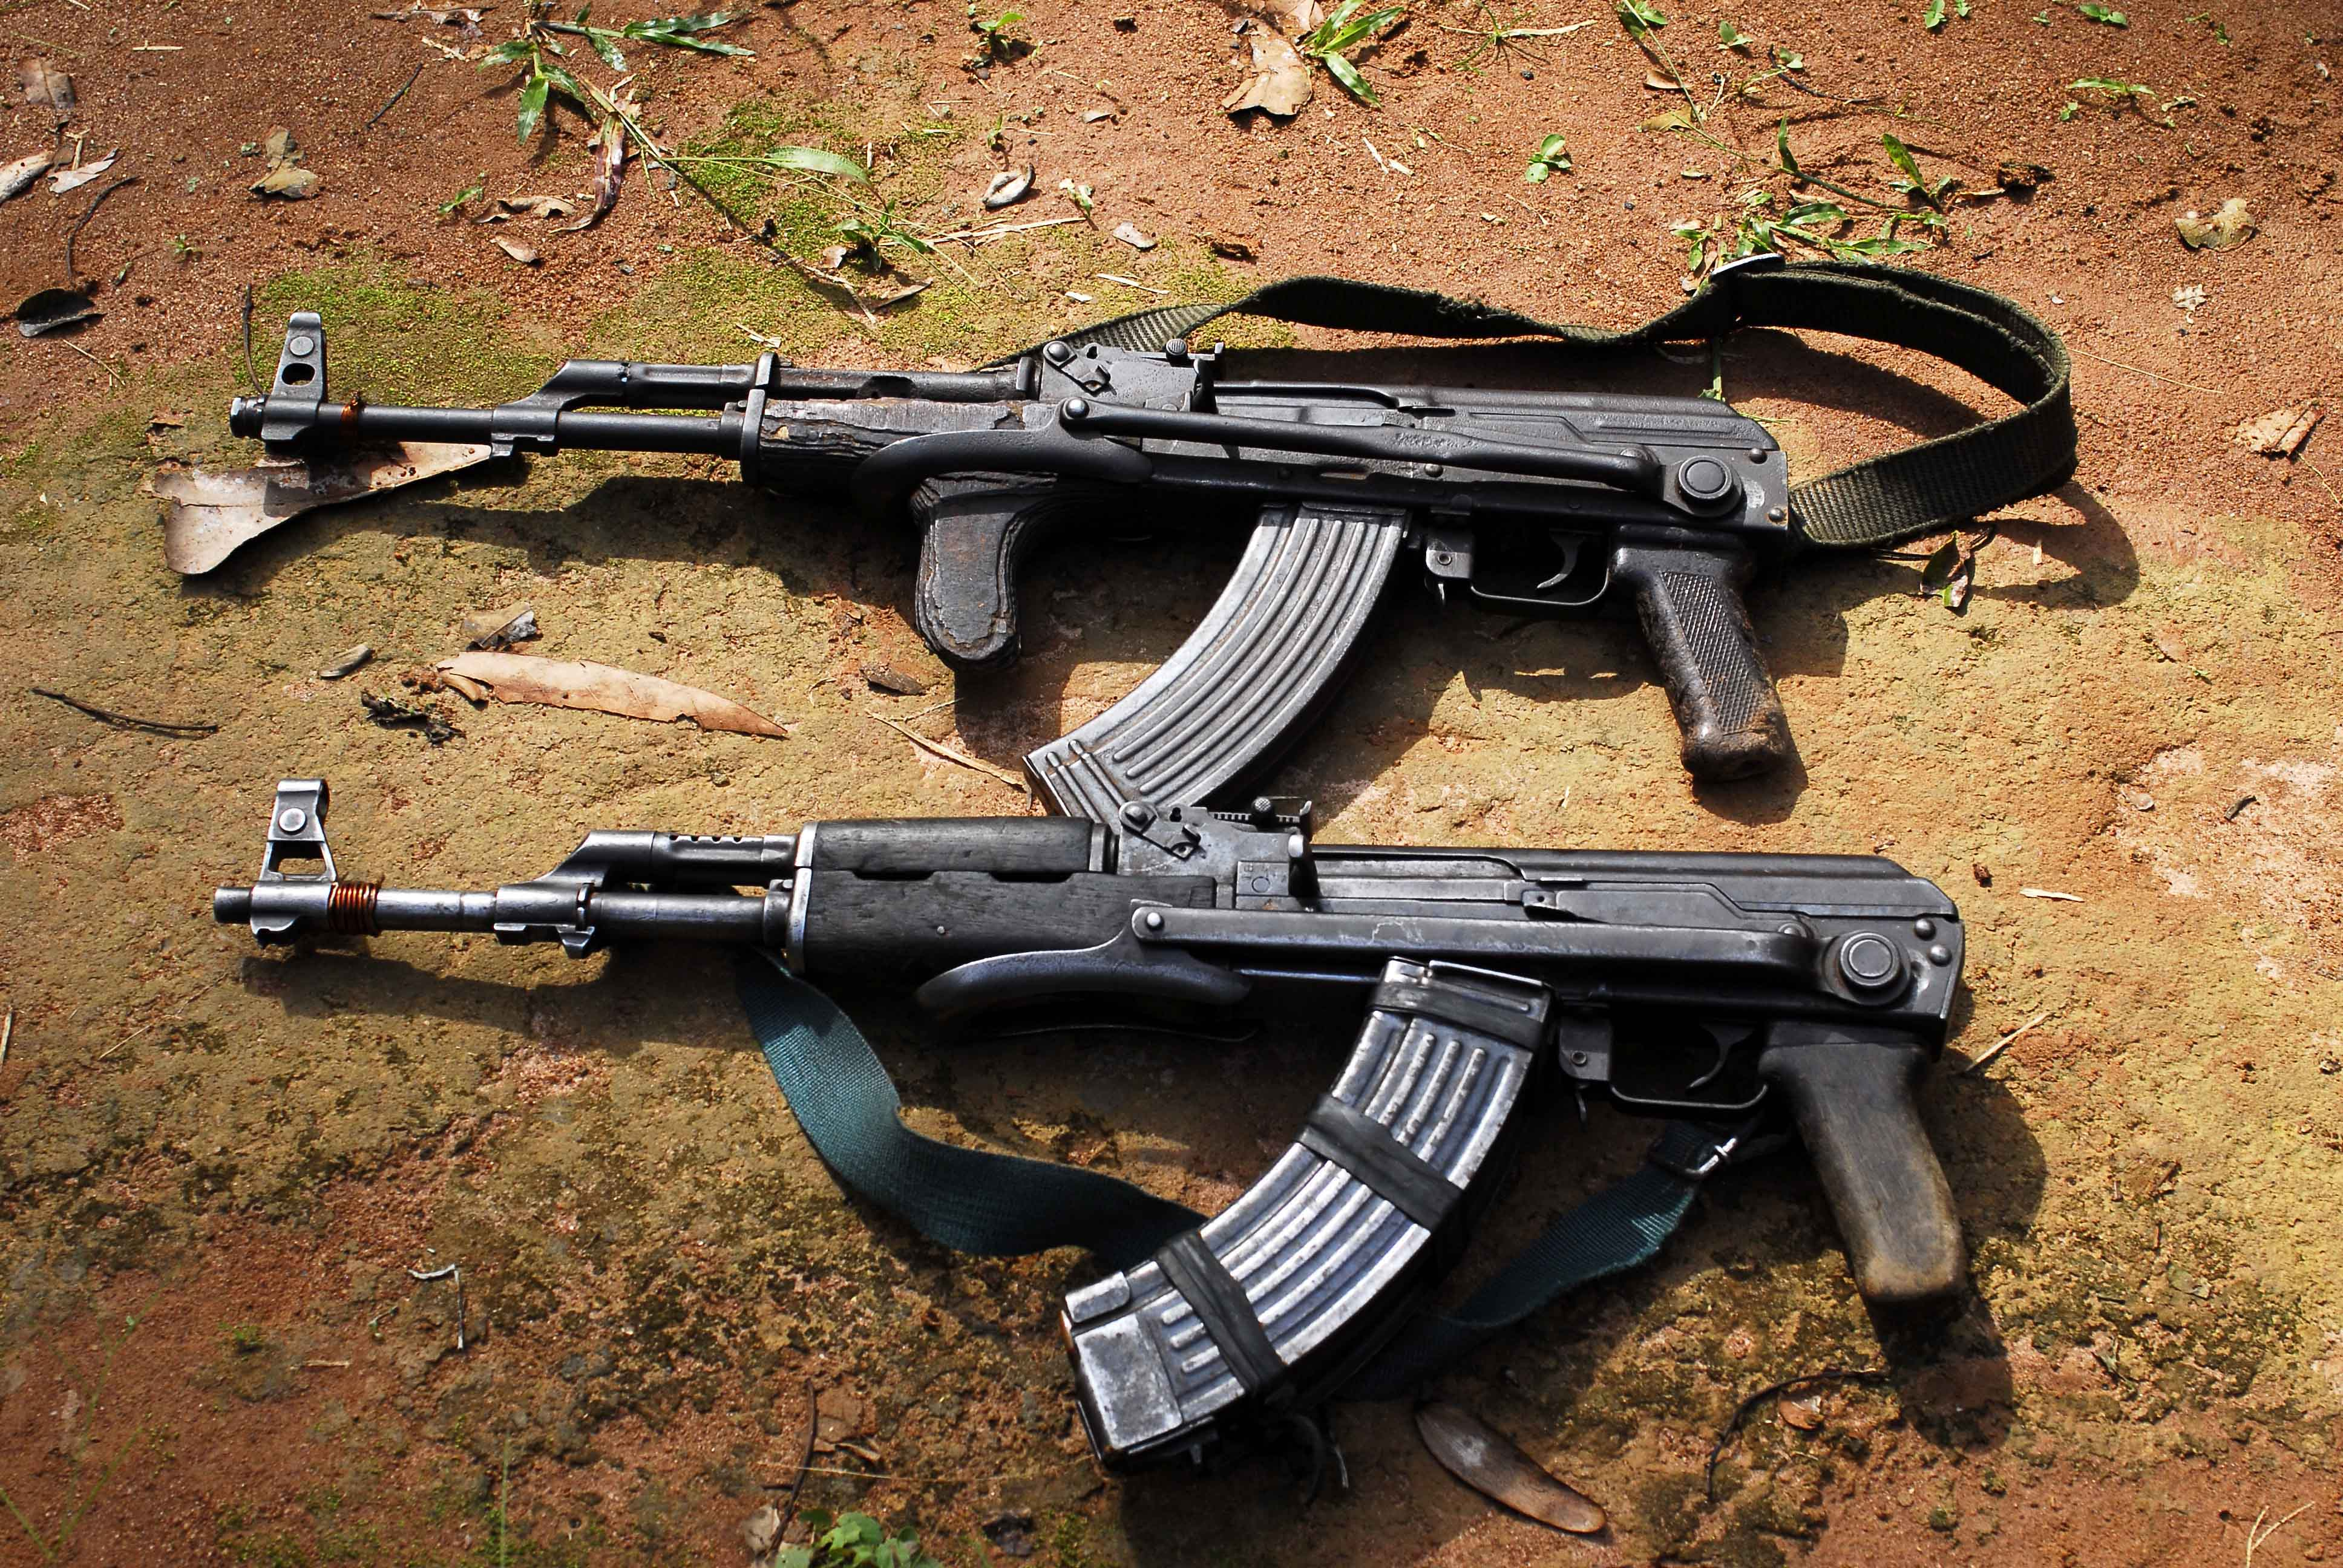 Image result for AK-47 rifles, photos